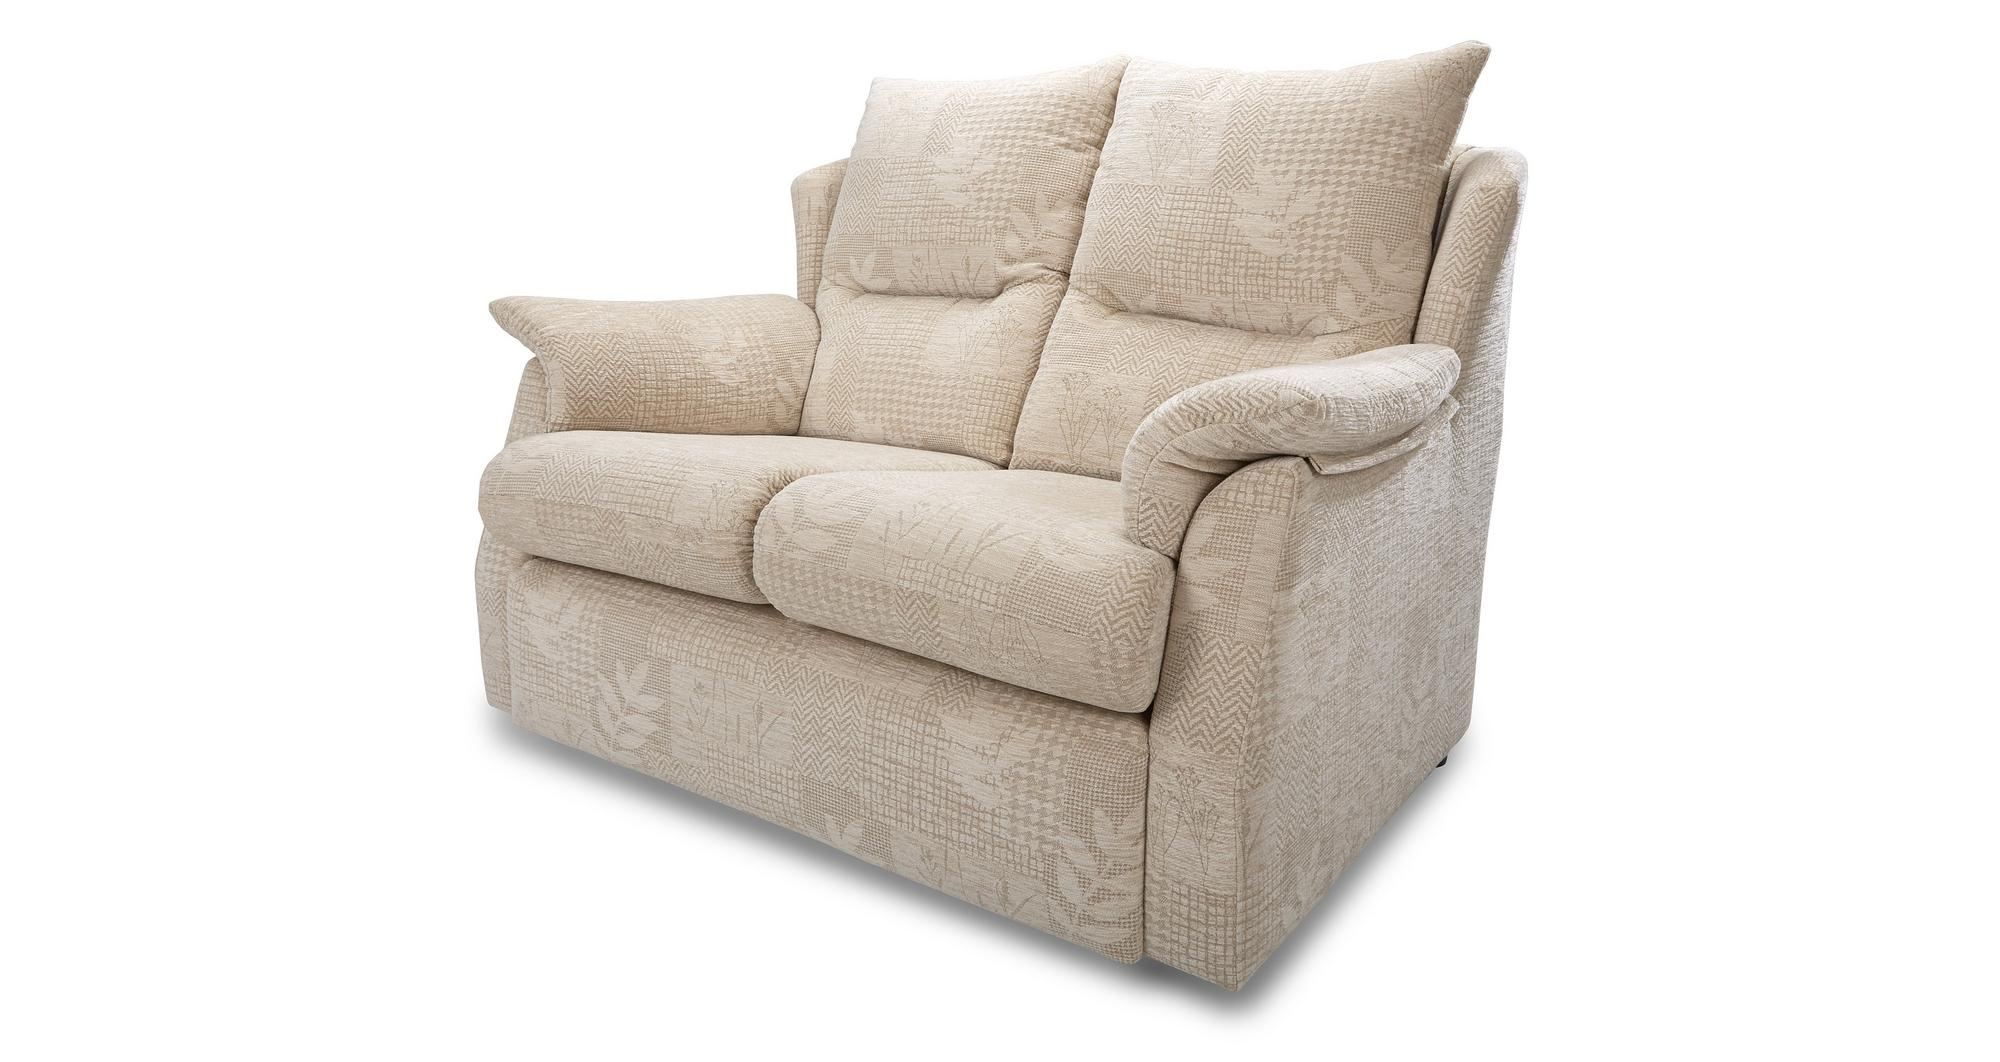 Dfs Stow Cream Fabric Small 2 Seater Sofa And Manual